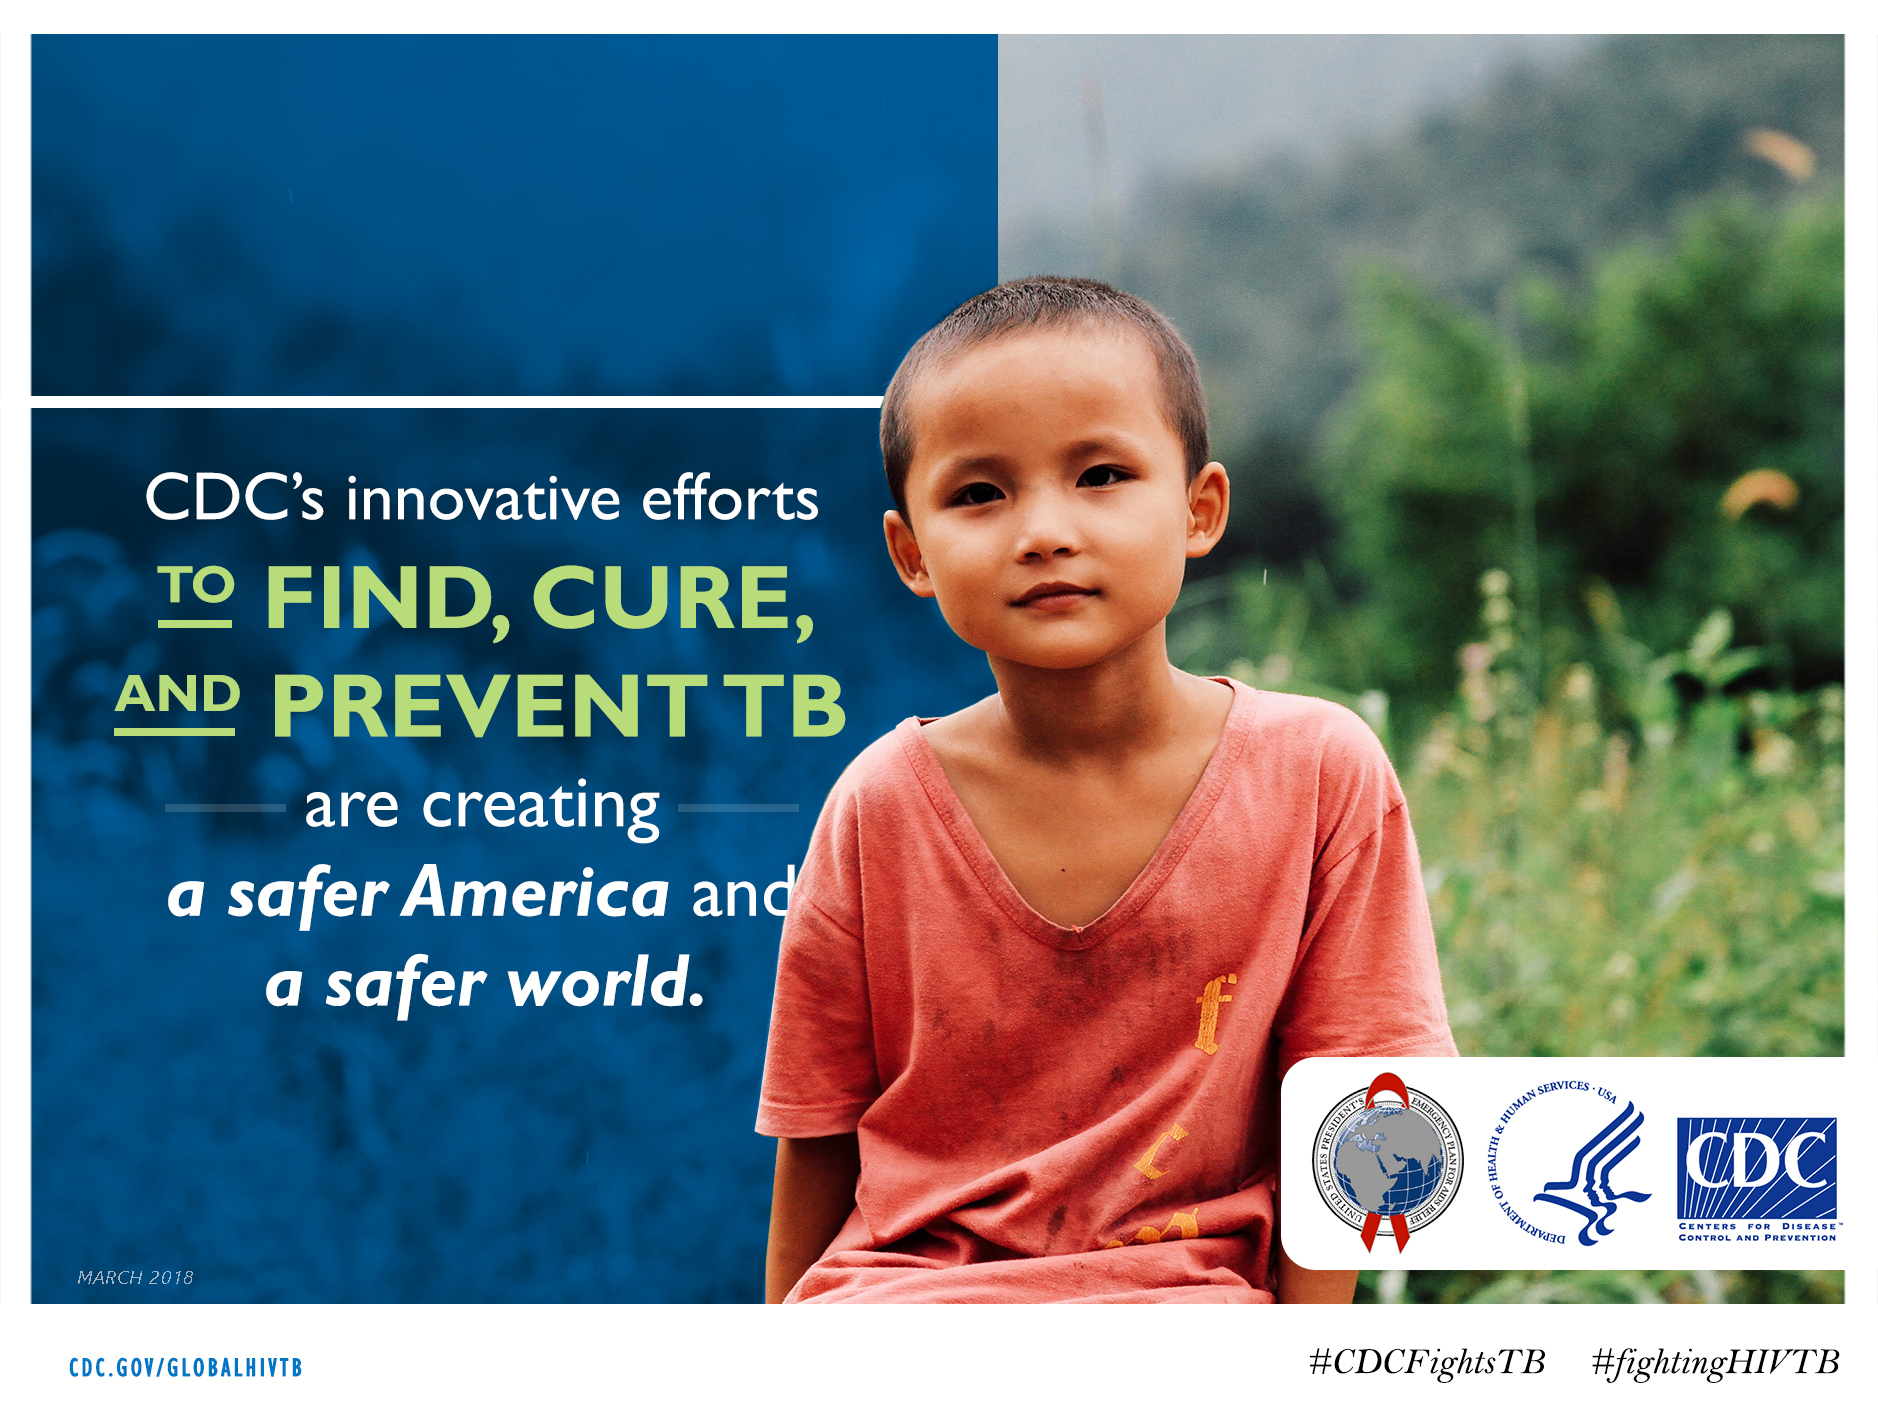 """Image of a young boy with text stating """"CDC's innovative efforts to find, cure, and prevent TB are creating a safer America and a safer world."""